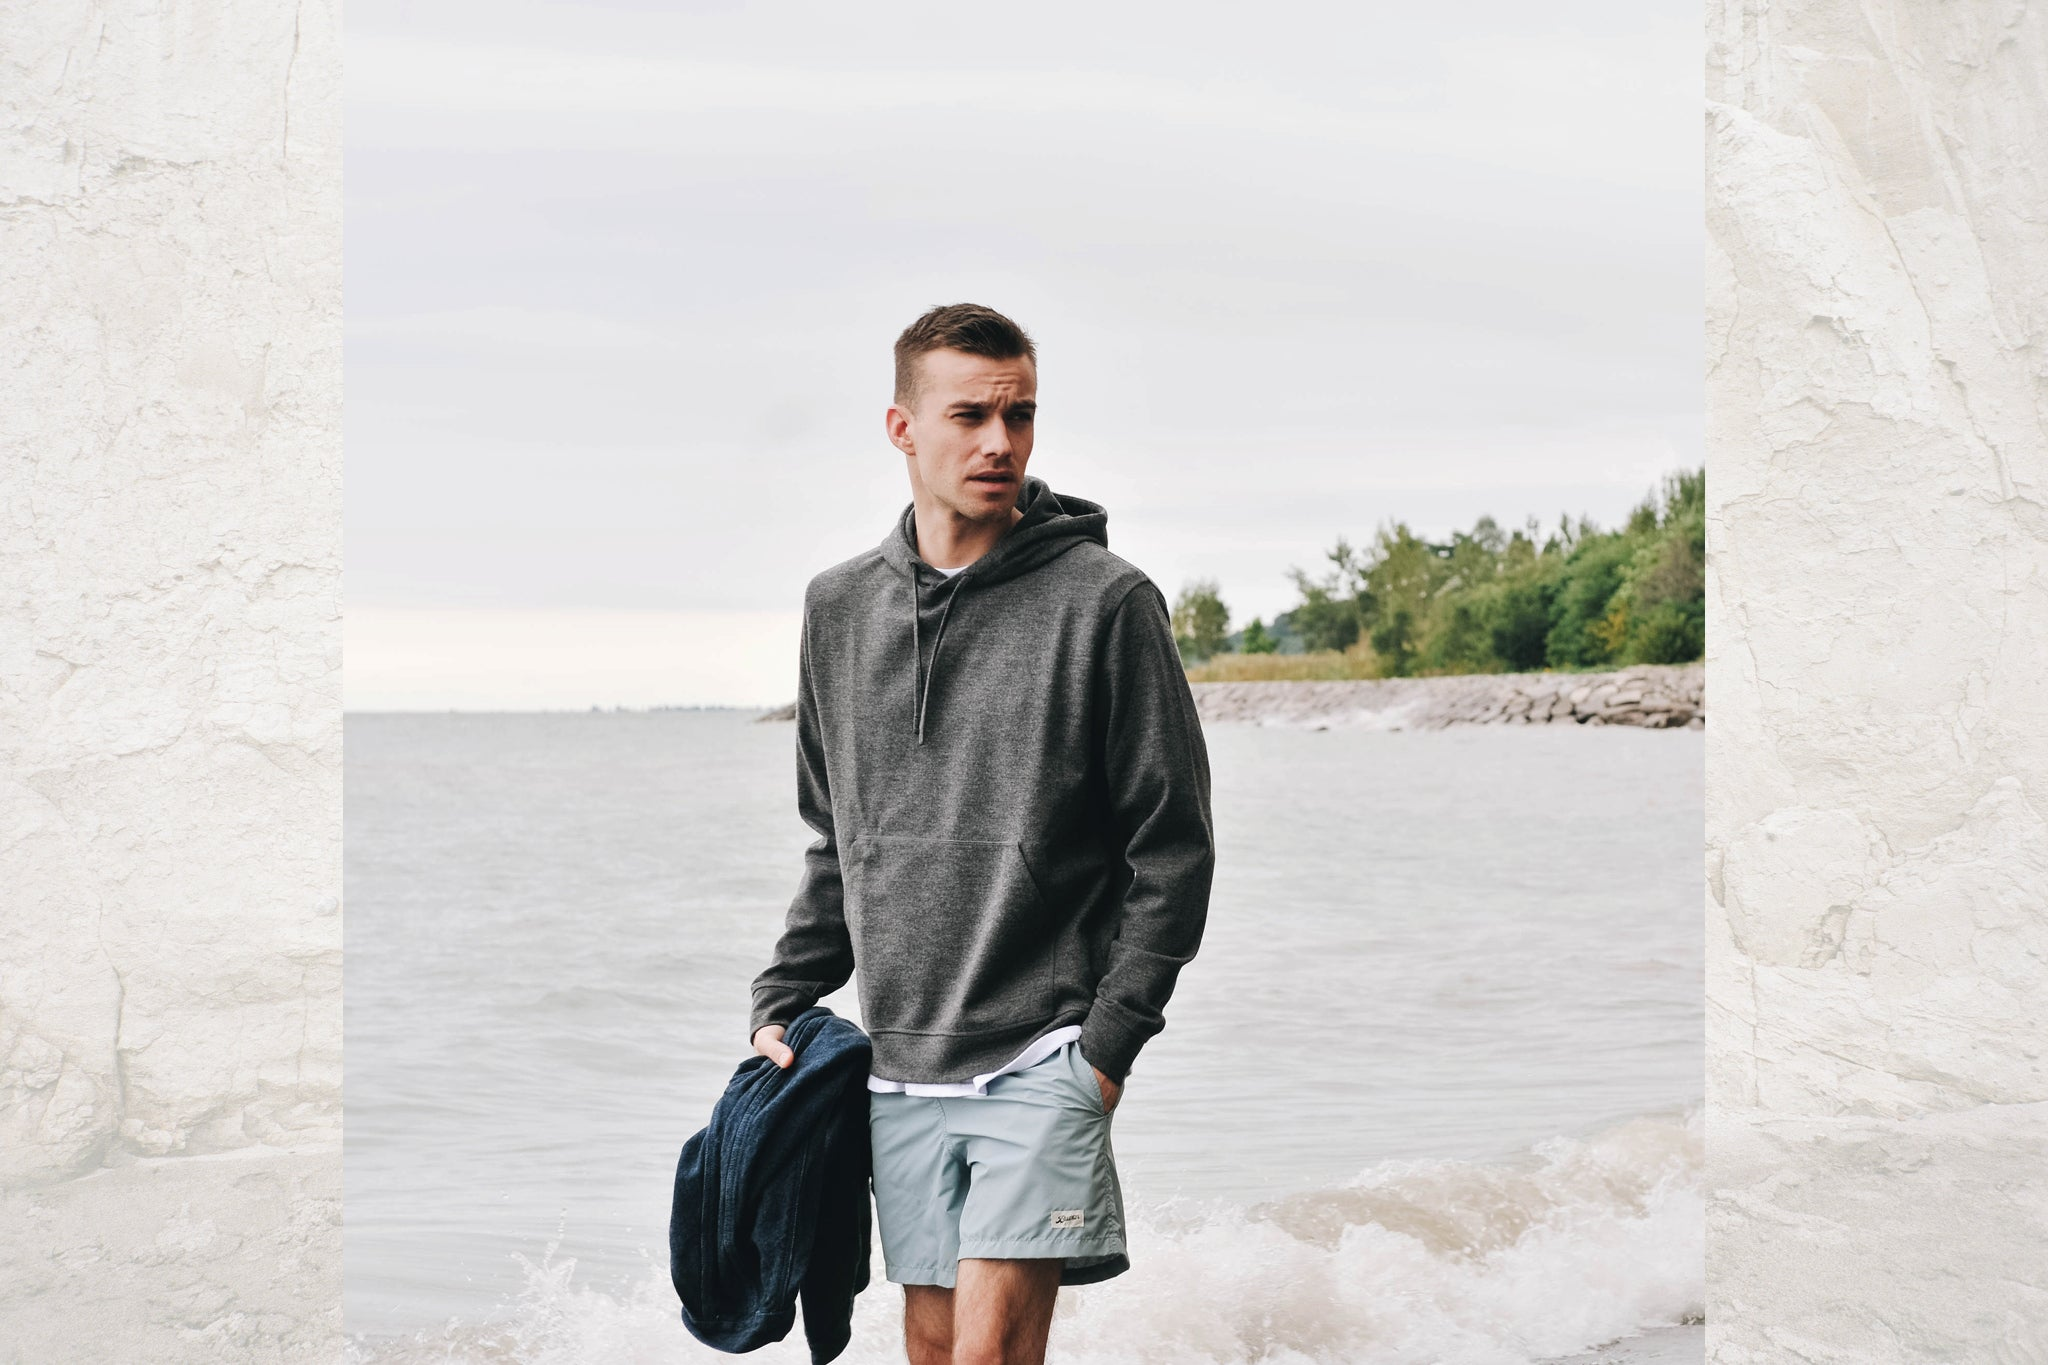 Man wearing swim trunks and a sweater on the beach